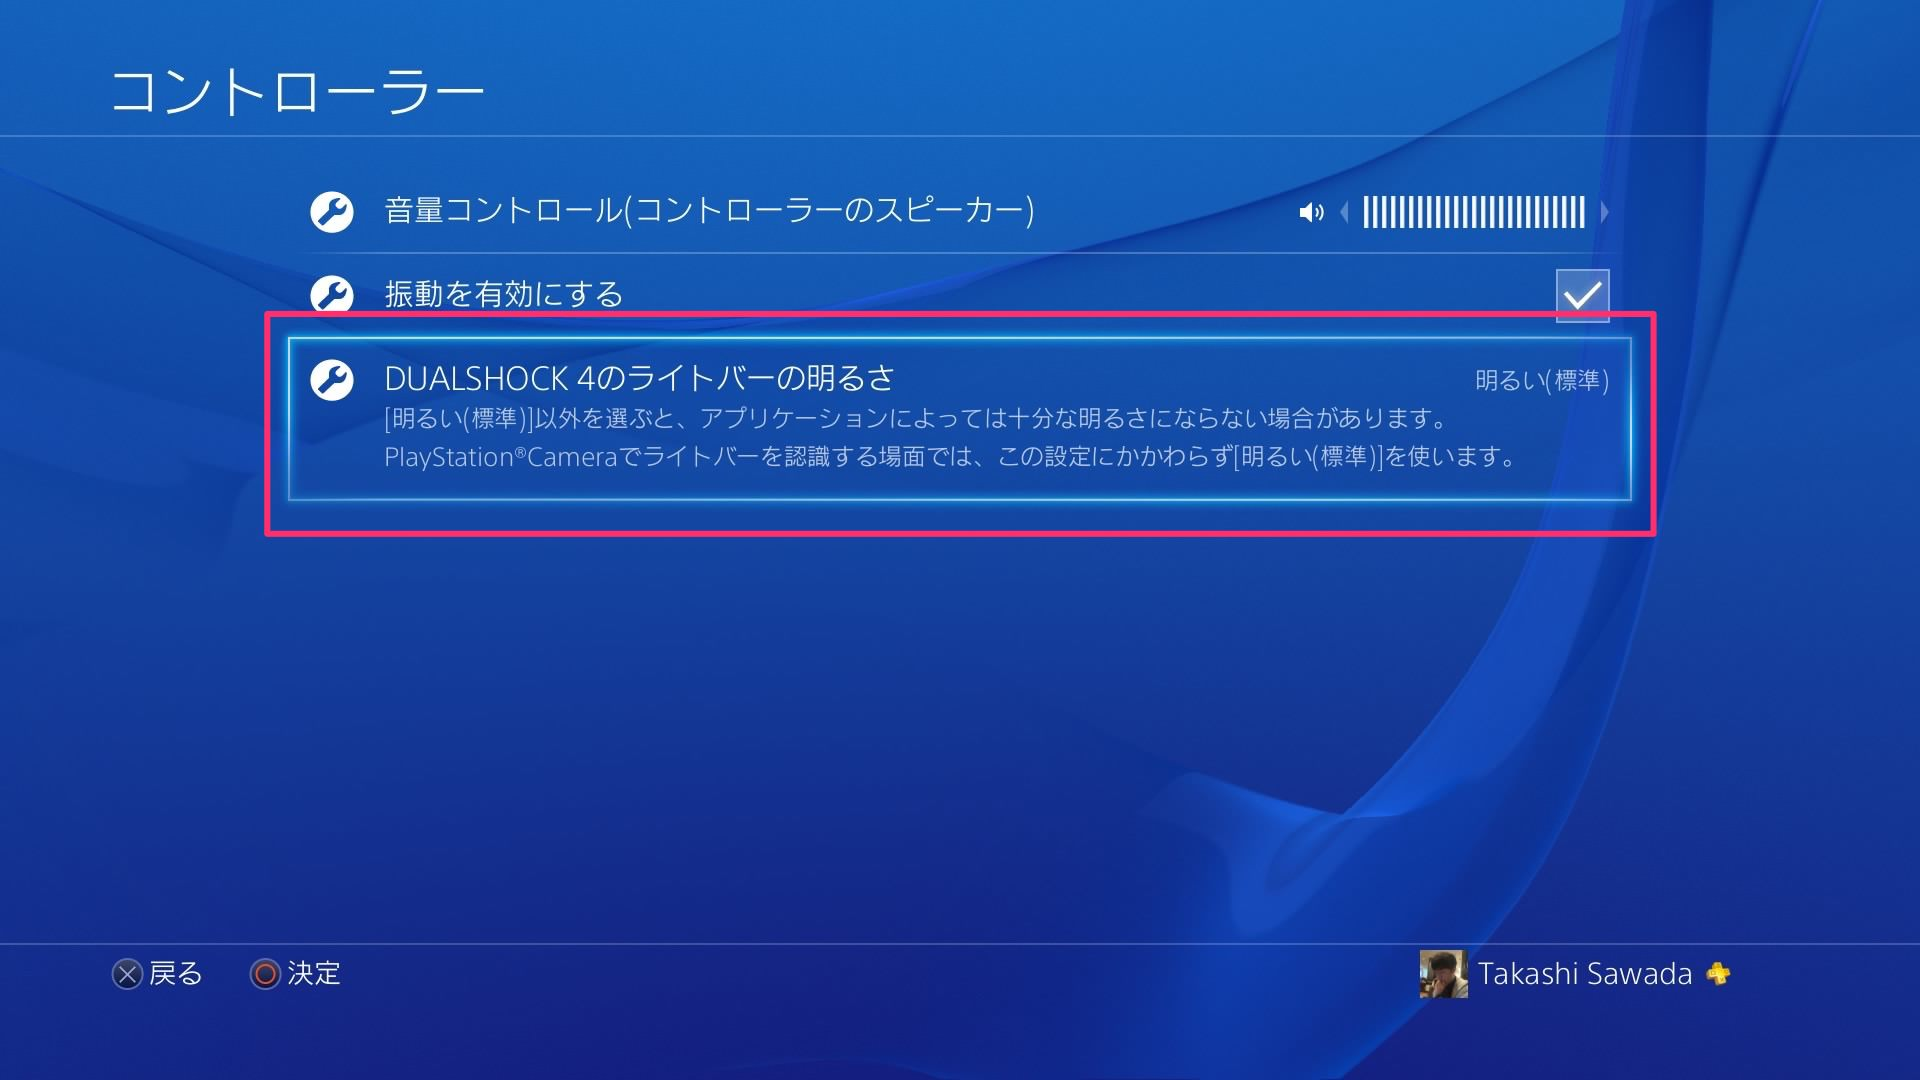 How to adjust to luminous energy of controller for playstation 4 04